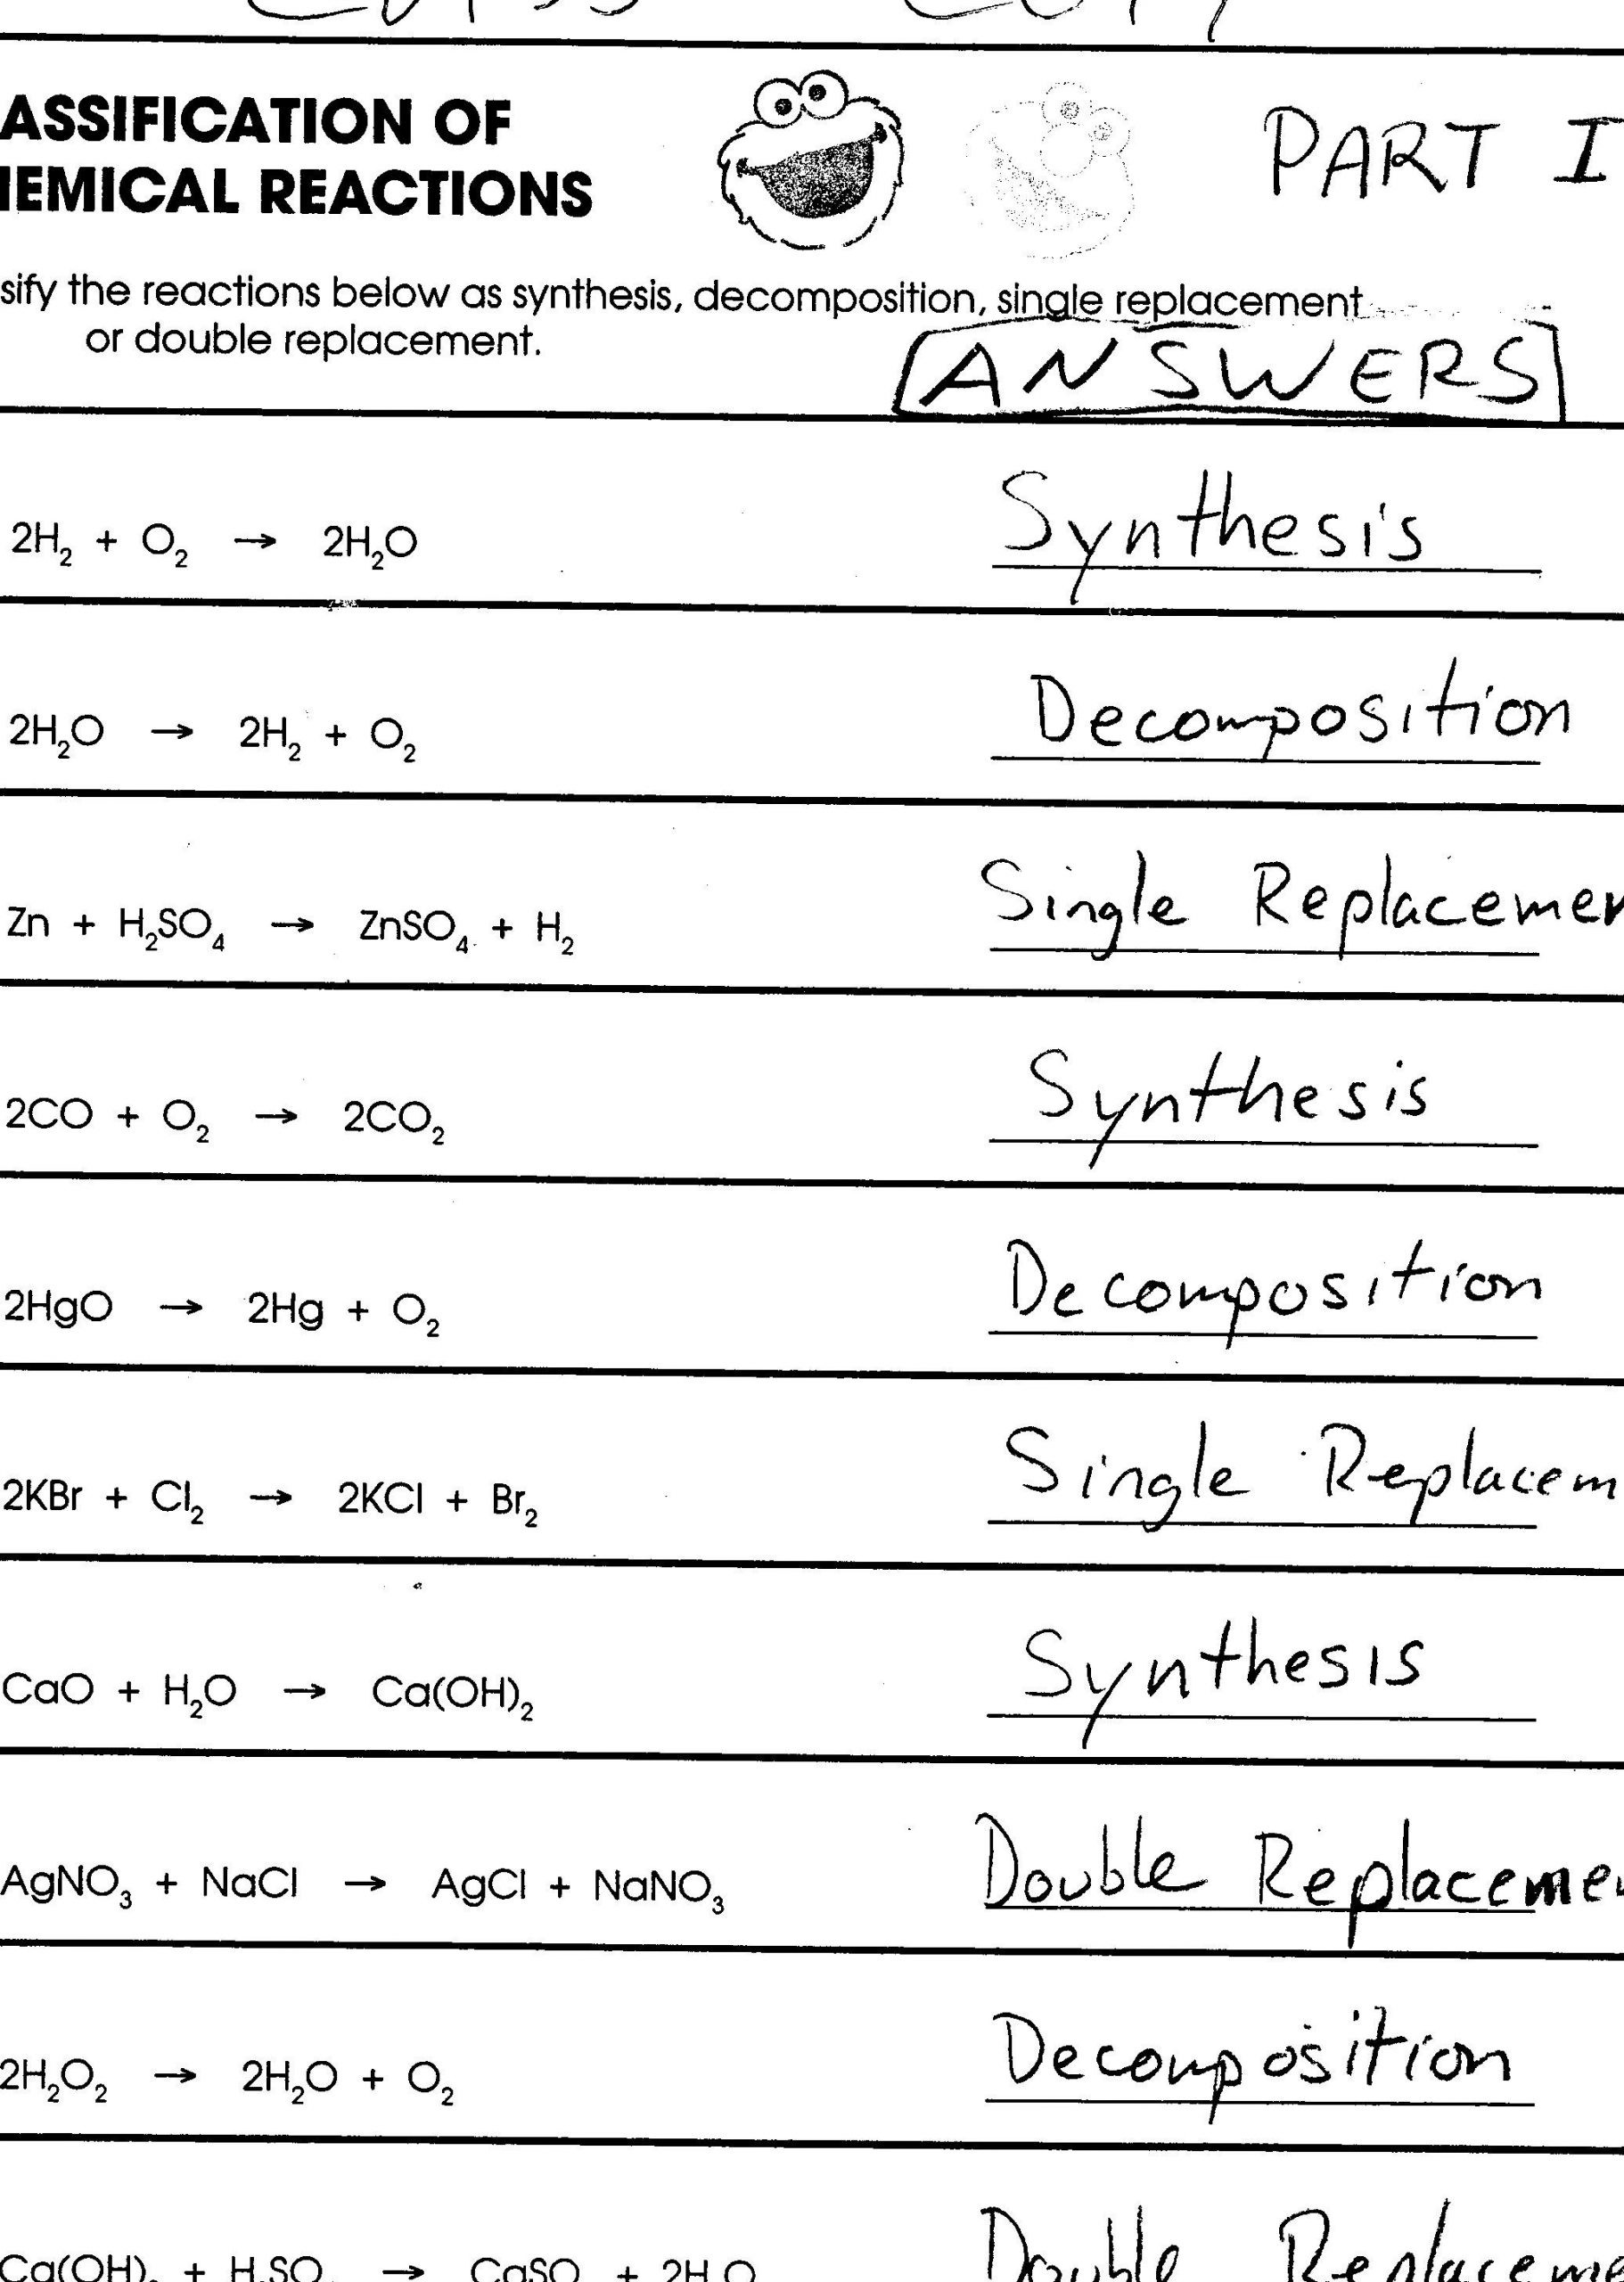 Simplifying Radicals Worksheet 1 10 Classifying Chemical Reactions Worksheet Answers